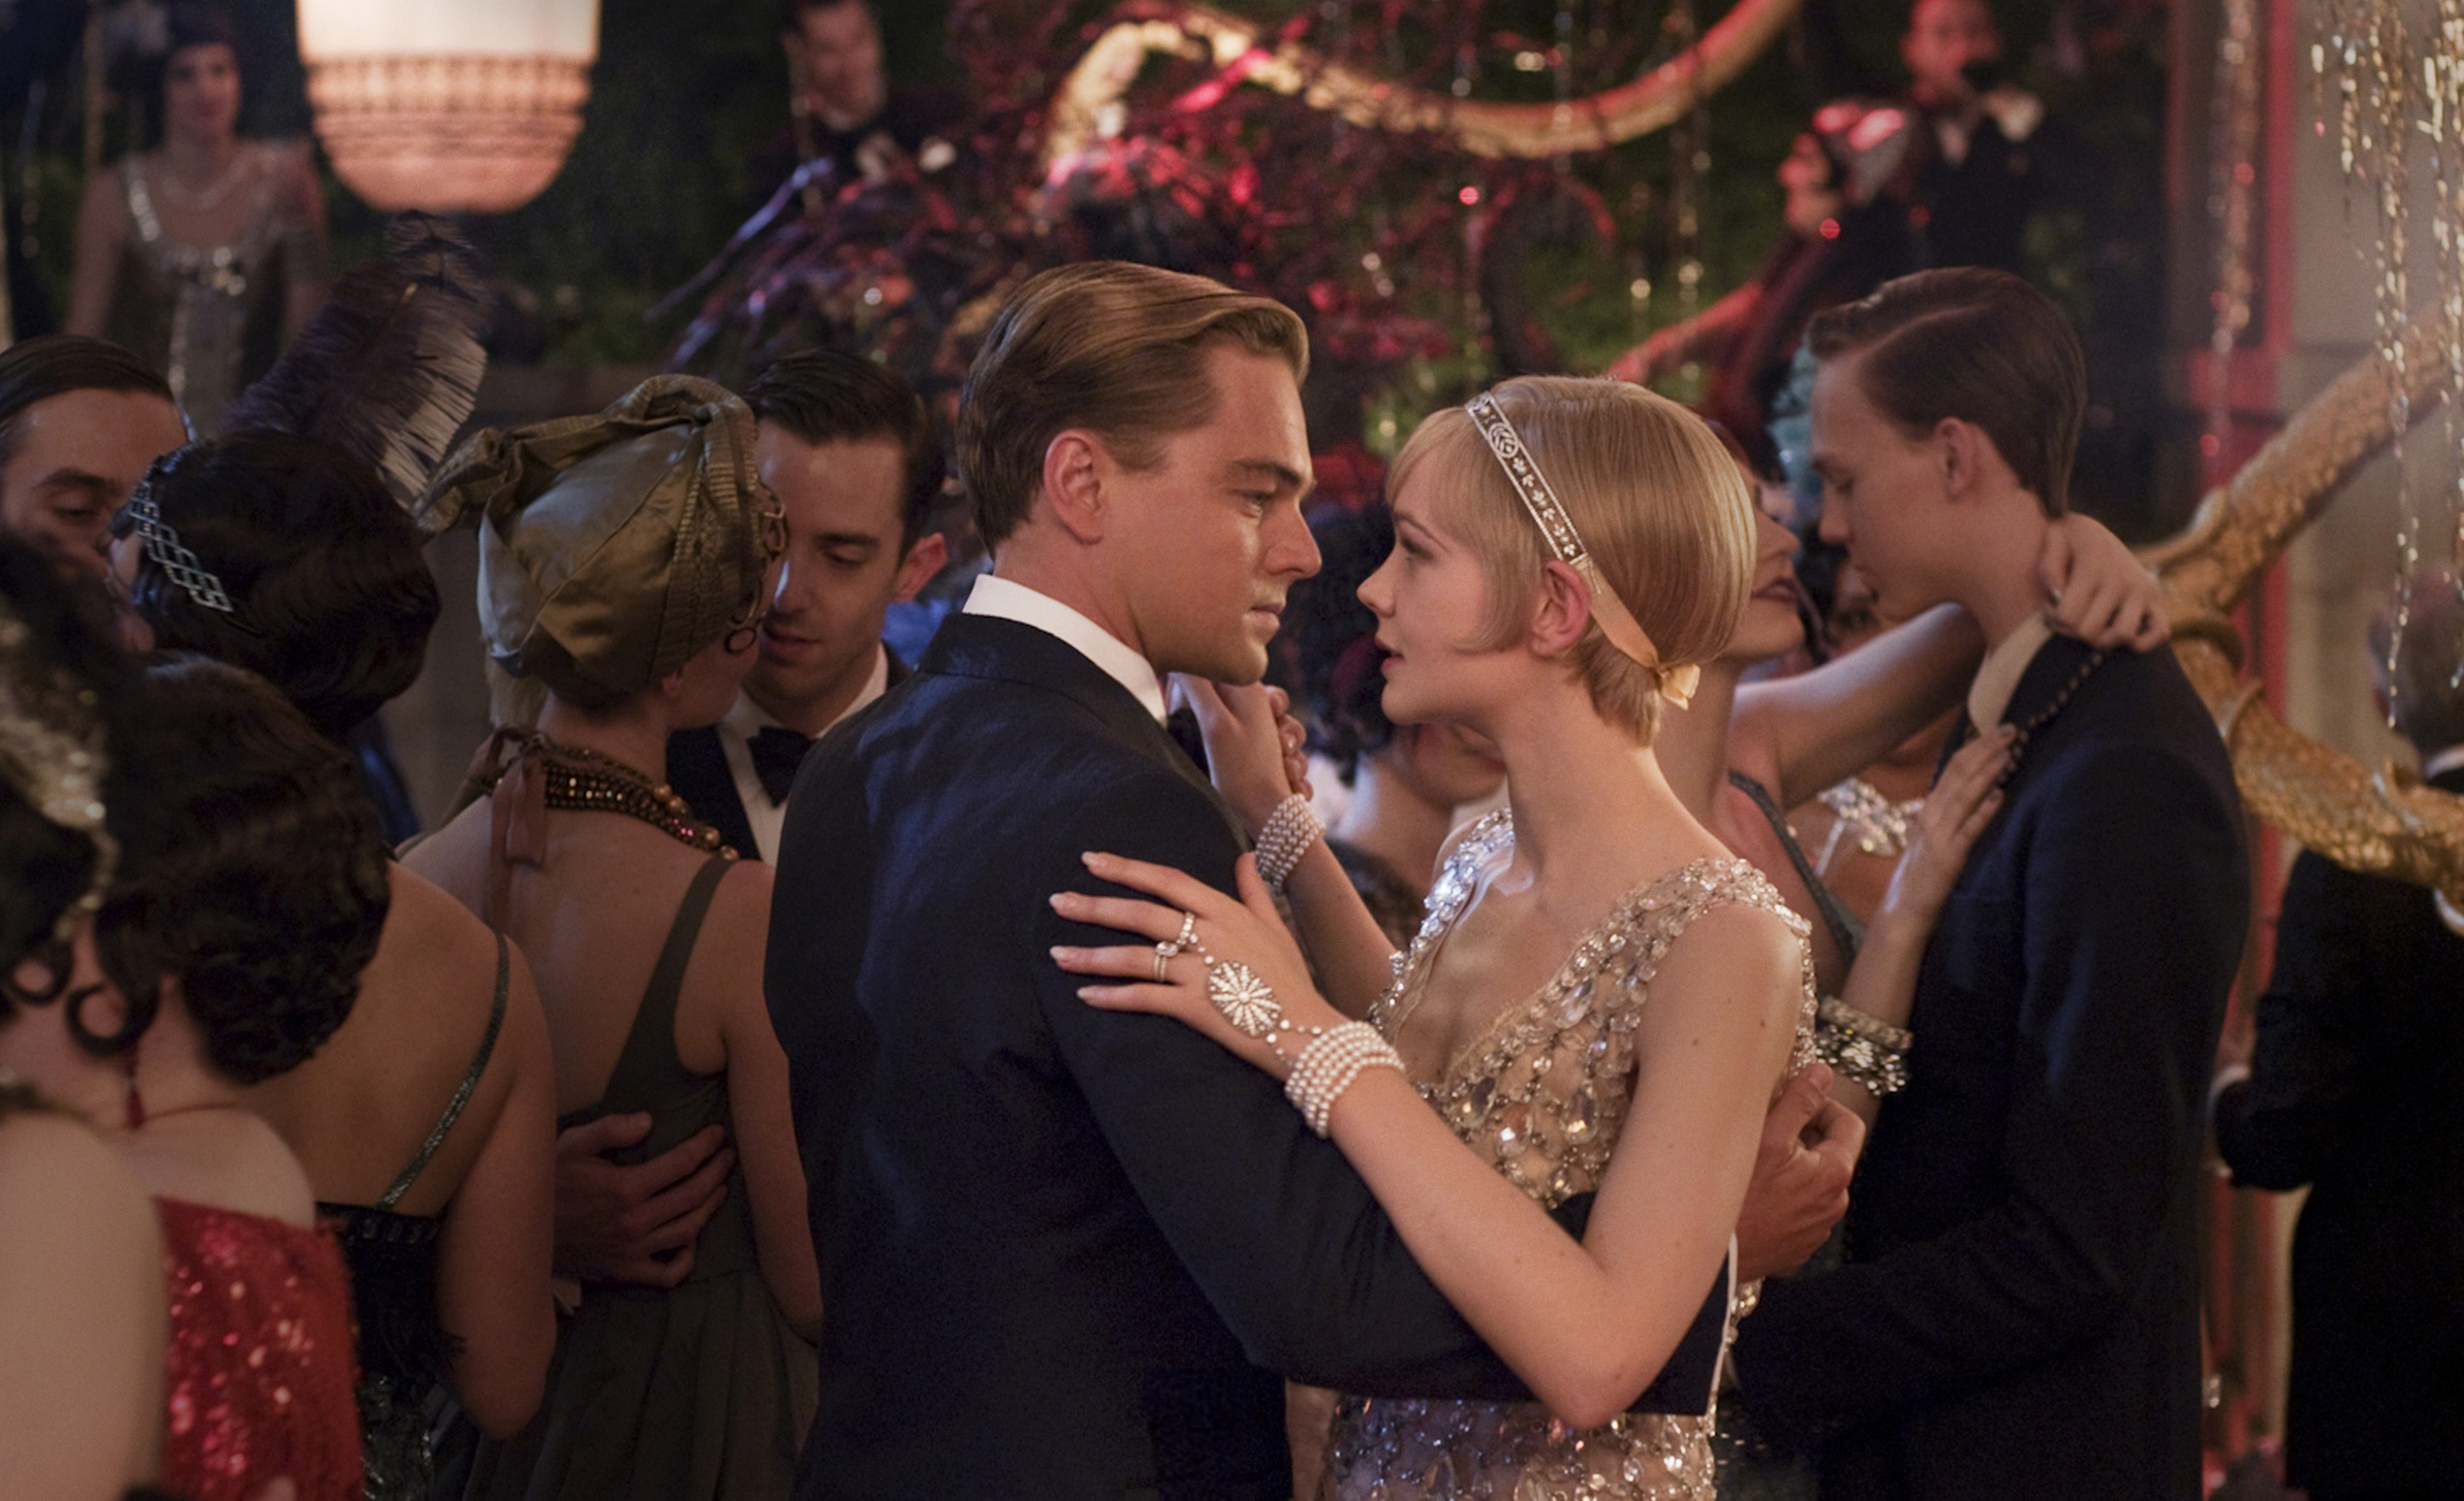 a reflection on the morals in the great gatsby by f scott fitzgerald Fitzgerald, f scott the great gatsby behavior described in the great gatsby was reflective of fitzgerald's personal life at the morality and gatsby.